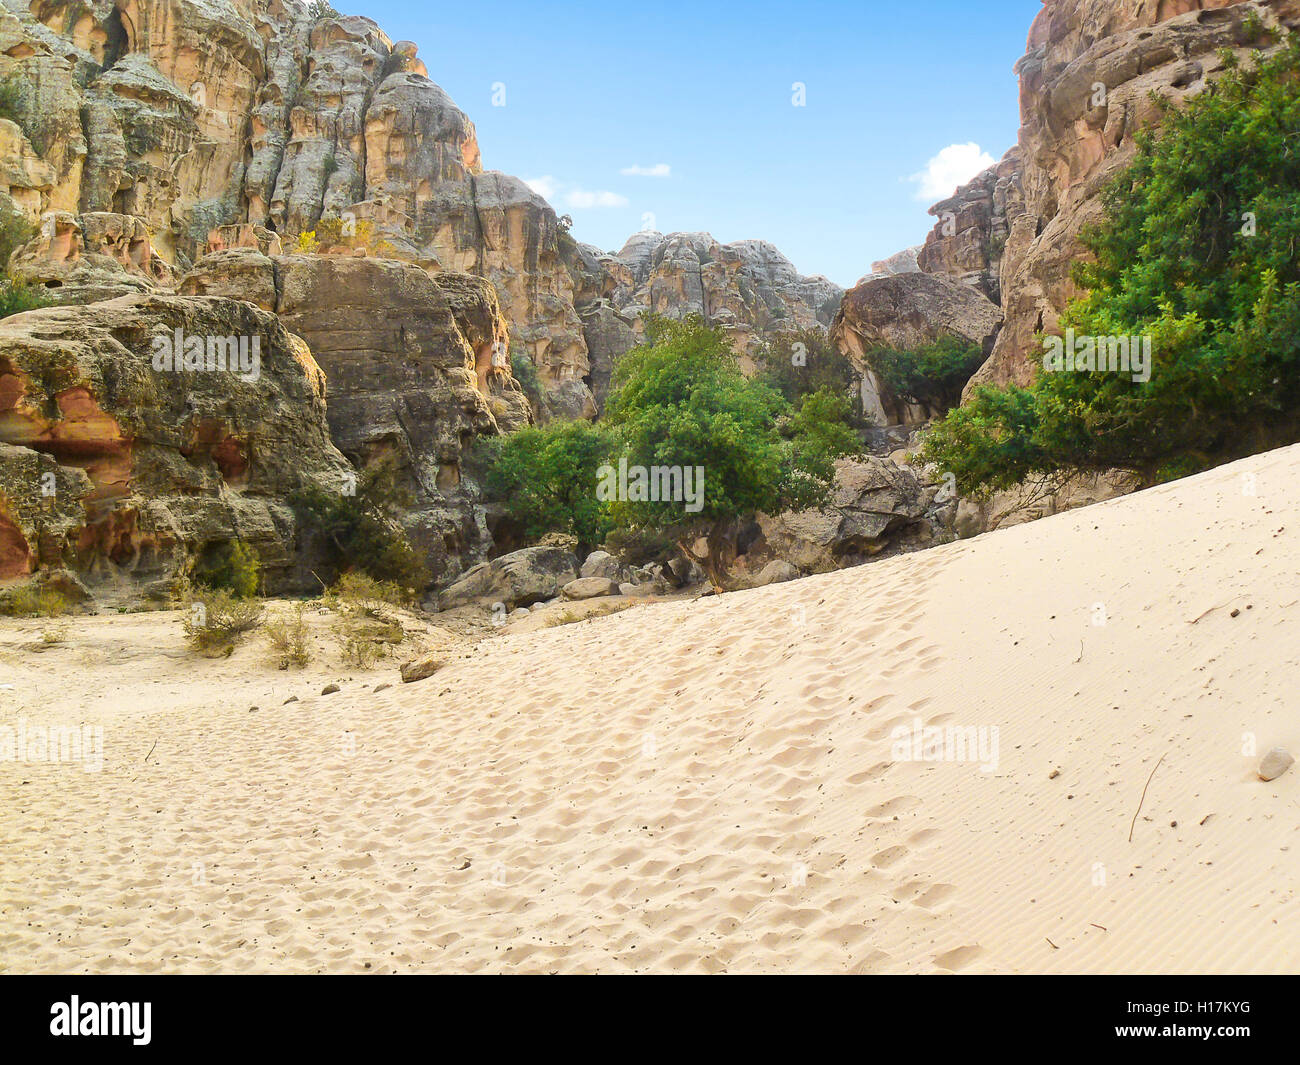 Dune between rocks of Petra, Jordan - Stock Image